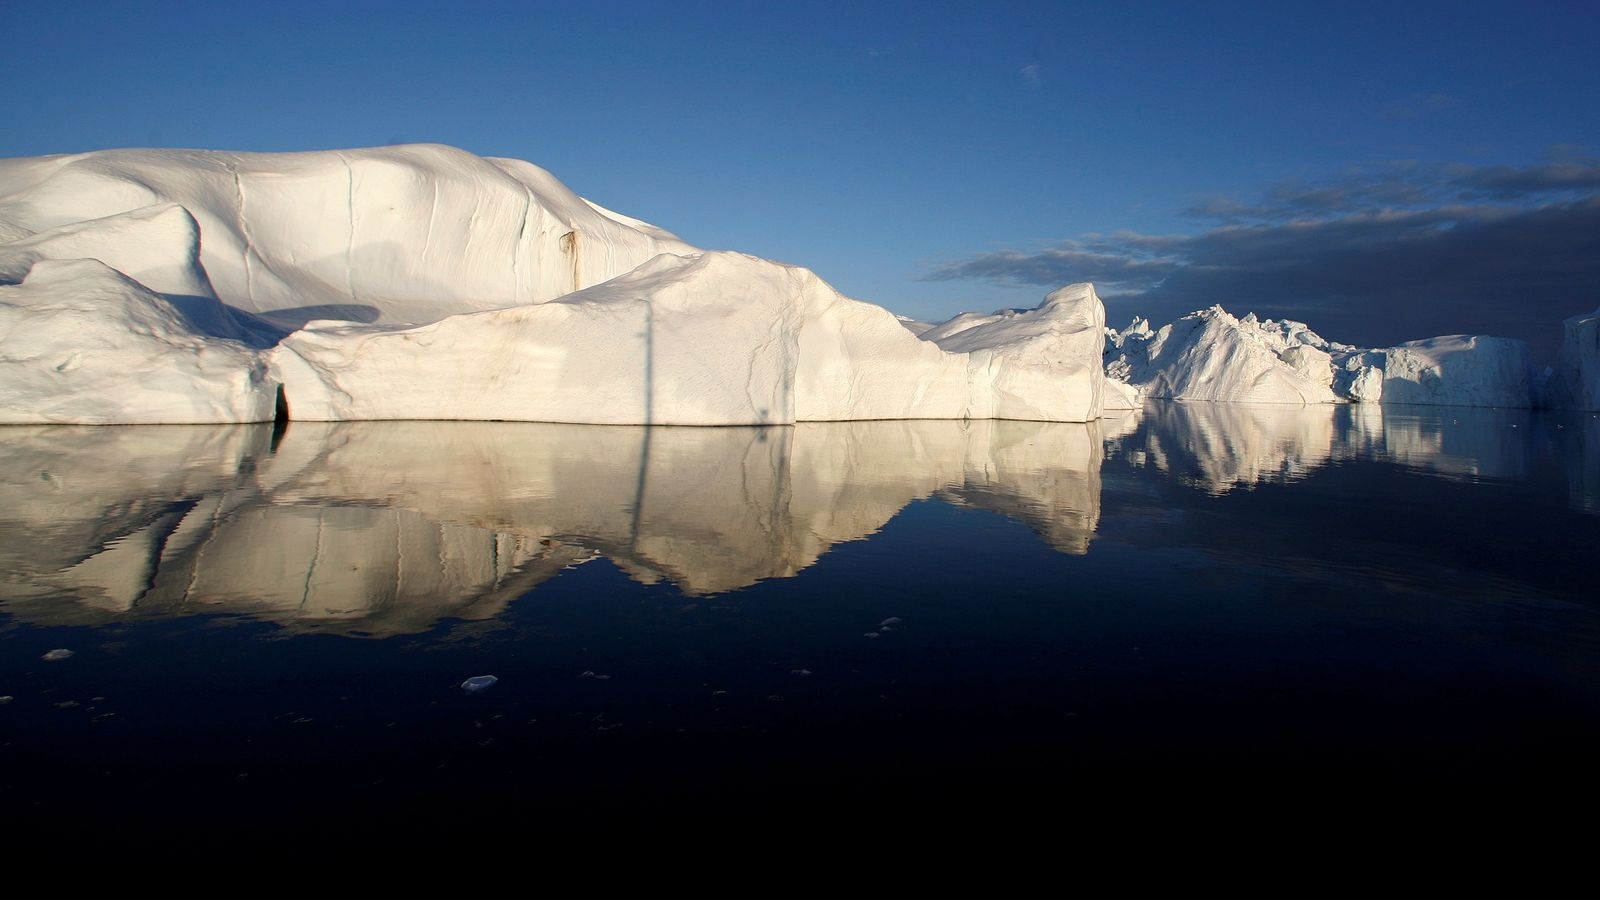 Enough ice melted in Greenland on Tuesday to cover Florida in two inches of water, scientists warn   Climate News - BlogPS